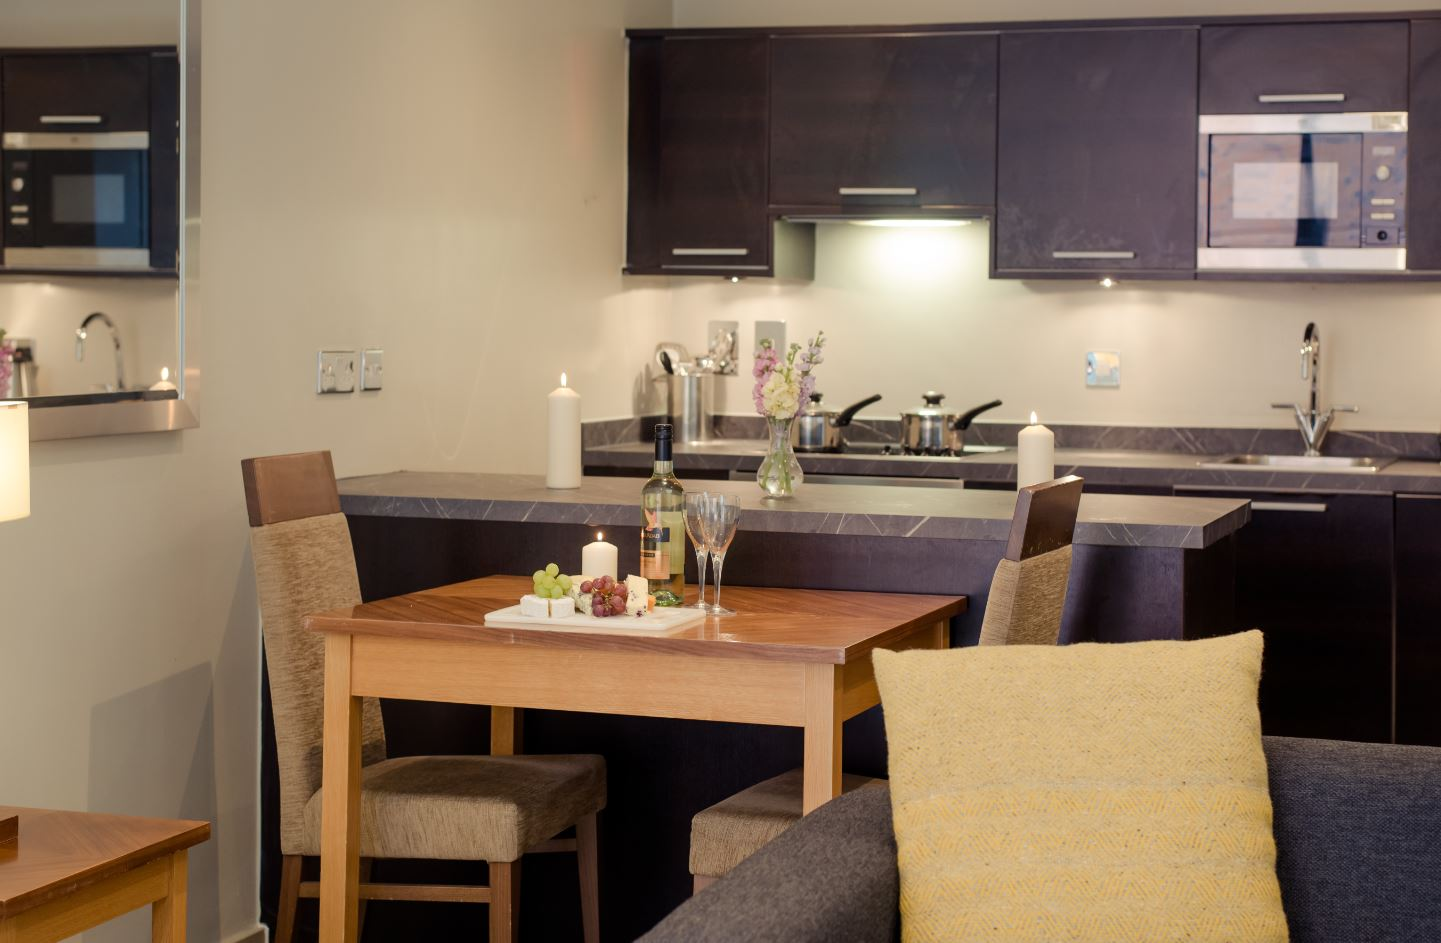 Kitchen area at Premier Suites Manchester